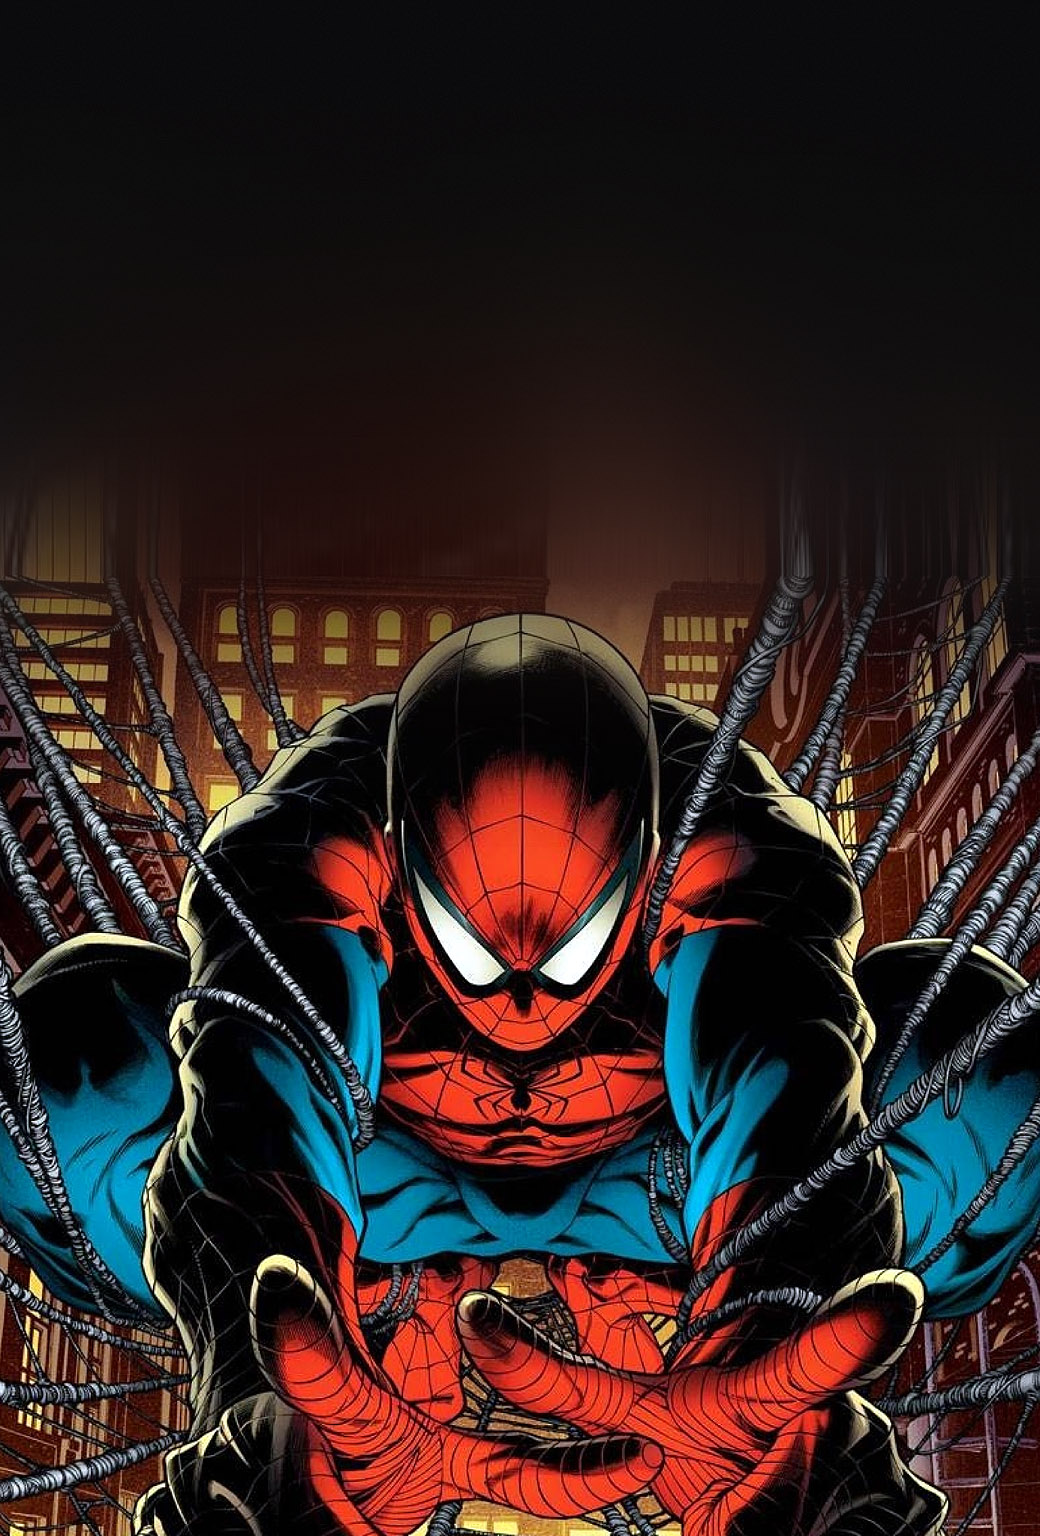 comic wallpaper for iphone 6 plus